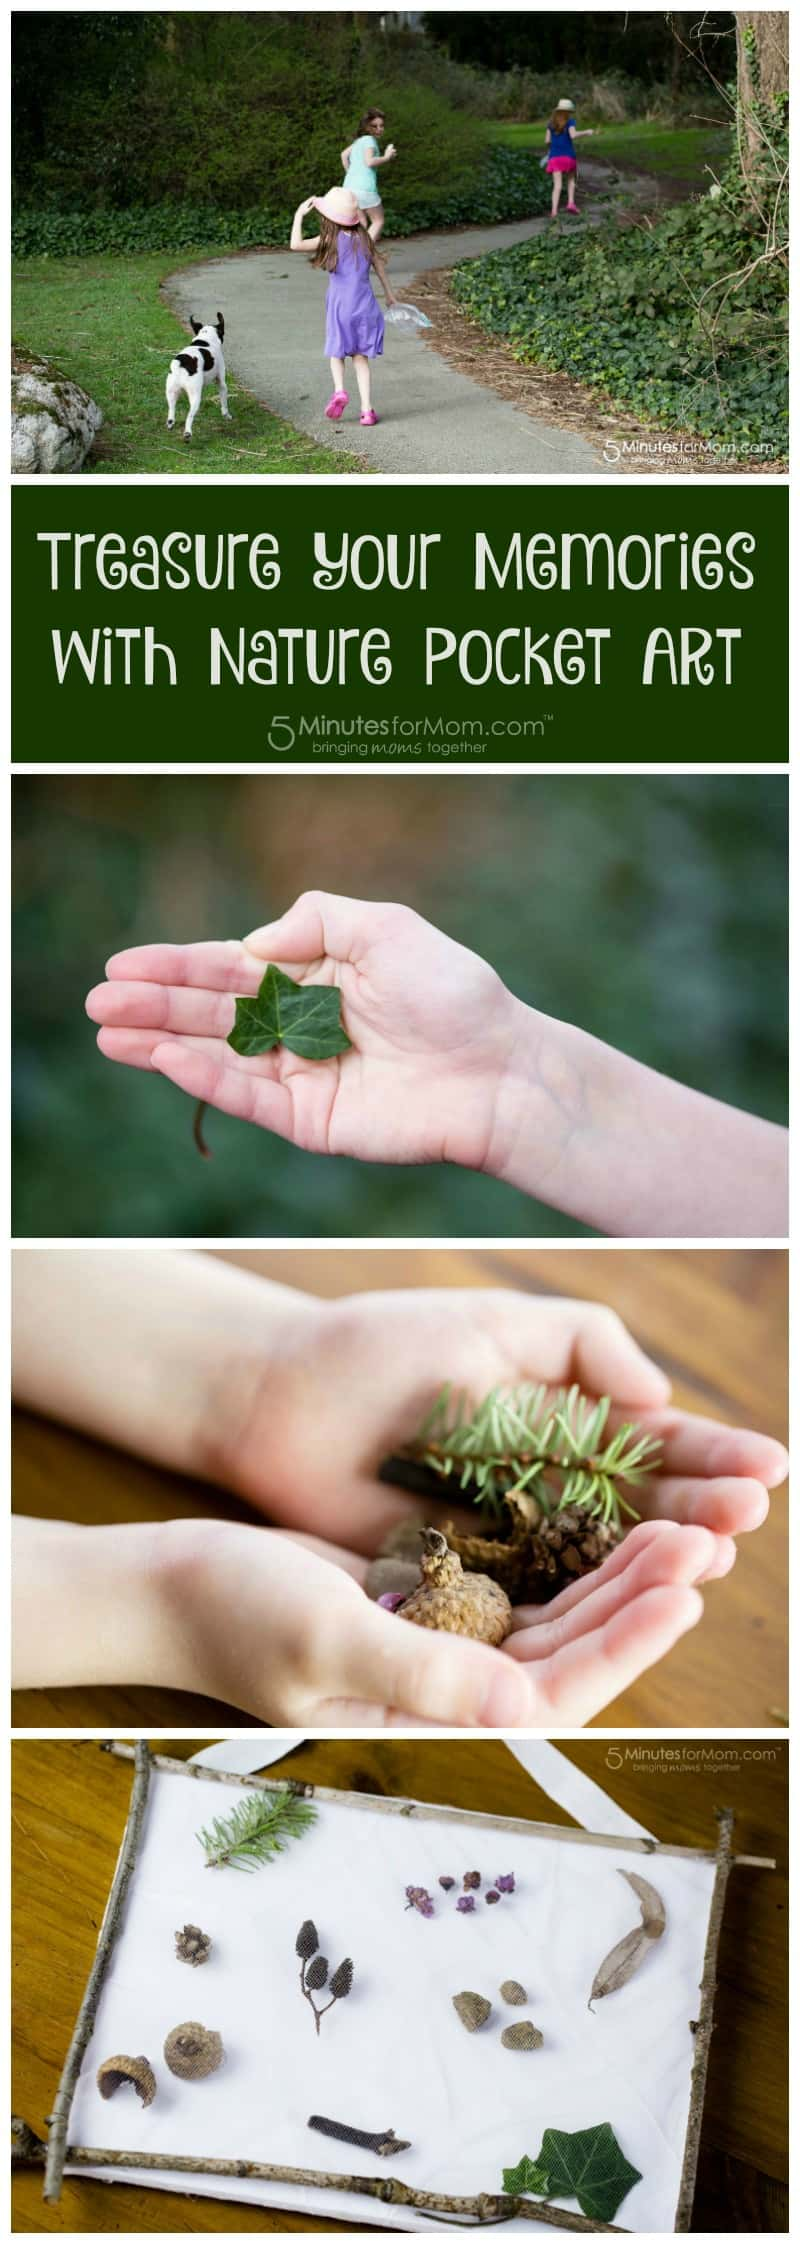 Treasure your memories with Nature Pocket Art - A Beautiful nature craft for kids